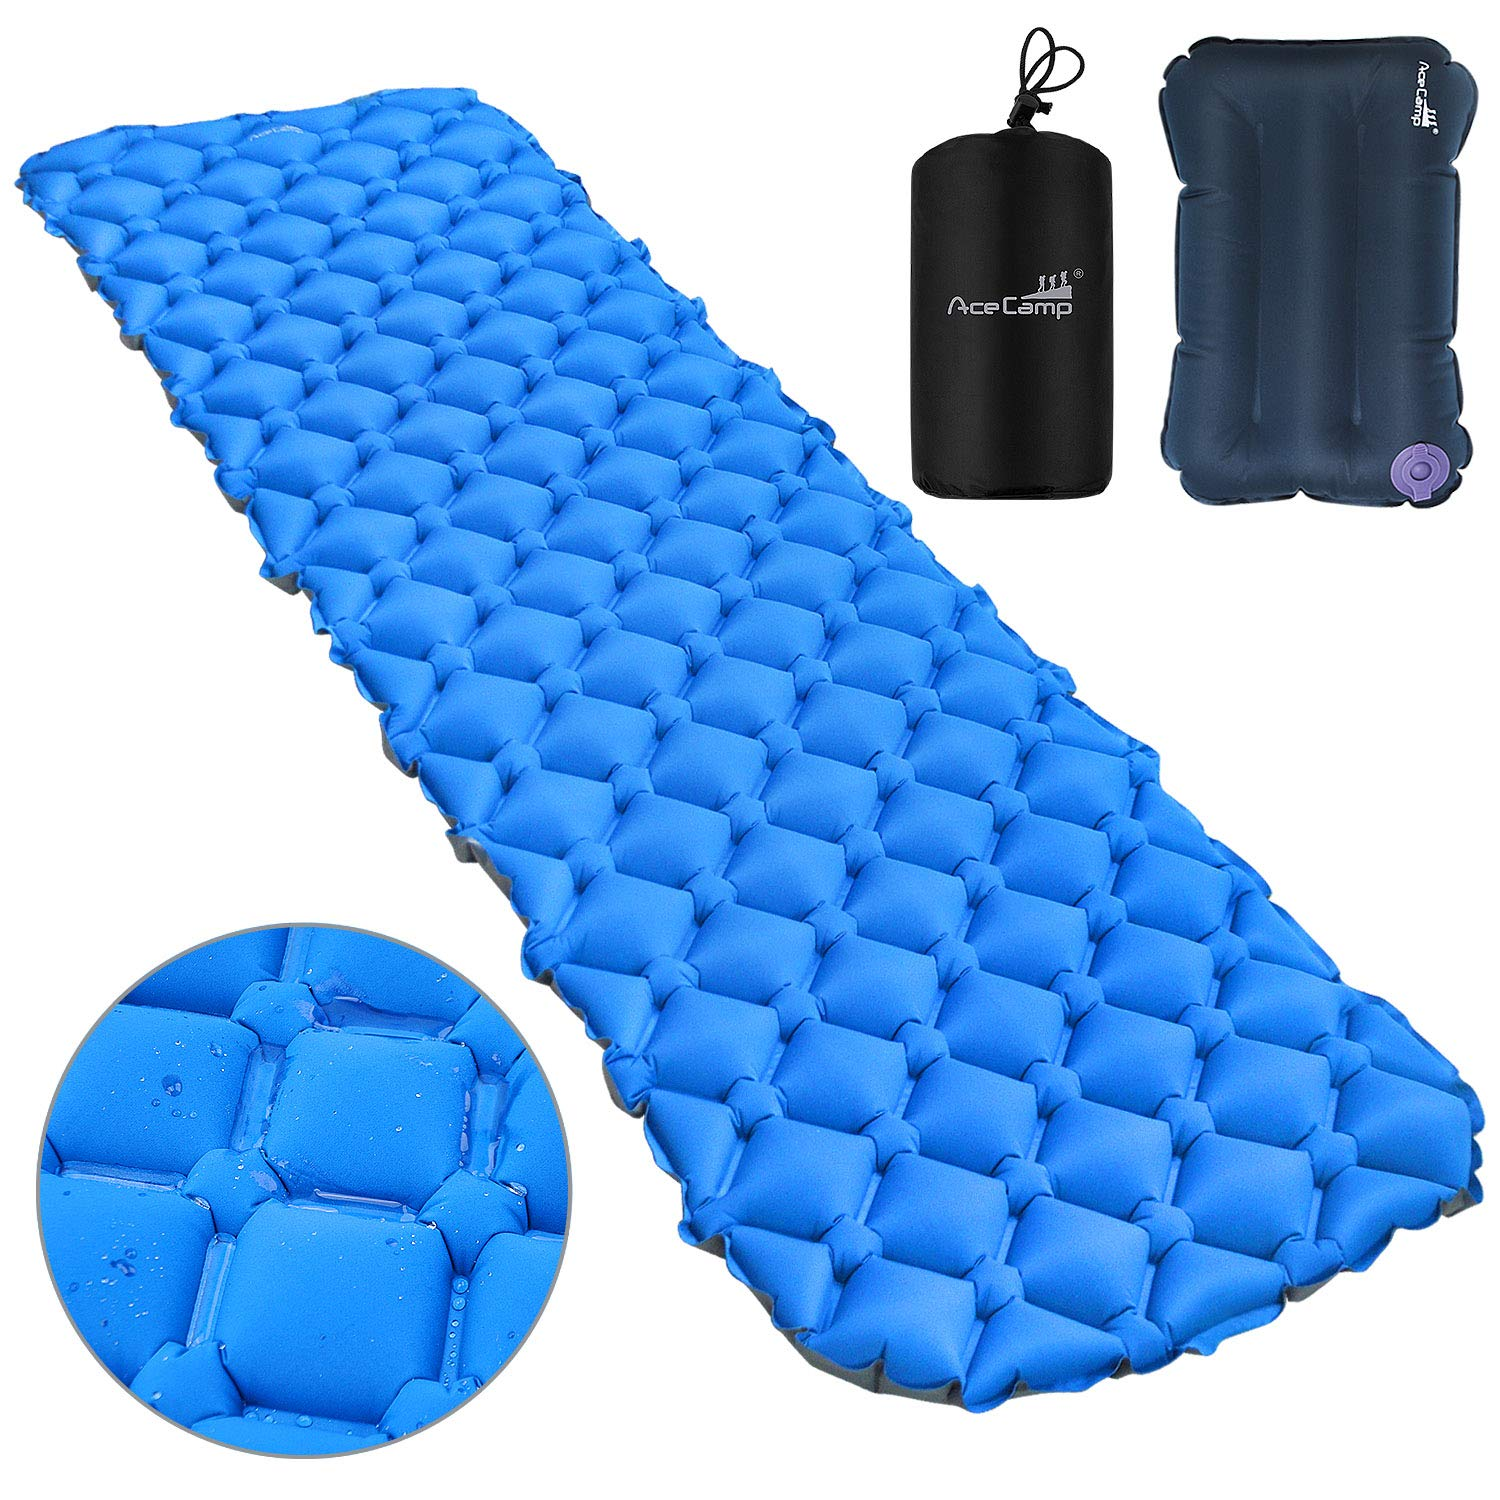 AceCamp Sleeping Pad,Ultralight Camping Sleeping Pad Inflatable Camp Pad with Travel Pillow for Backpacking and Hiking by AceCamp